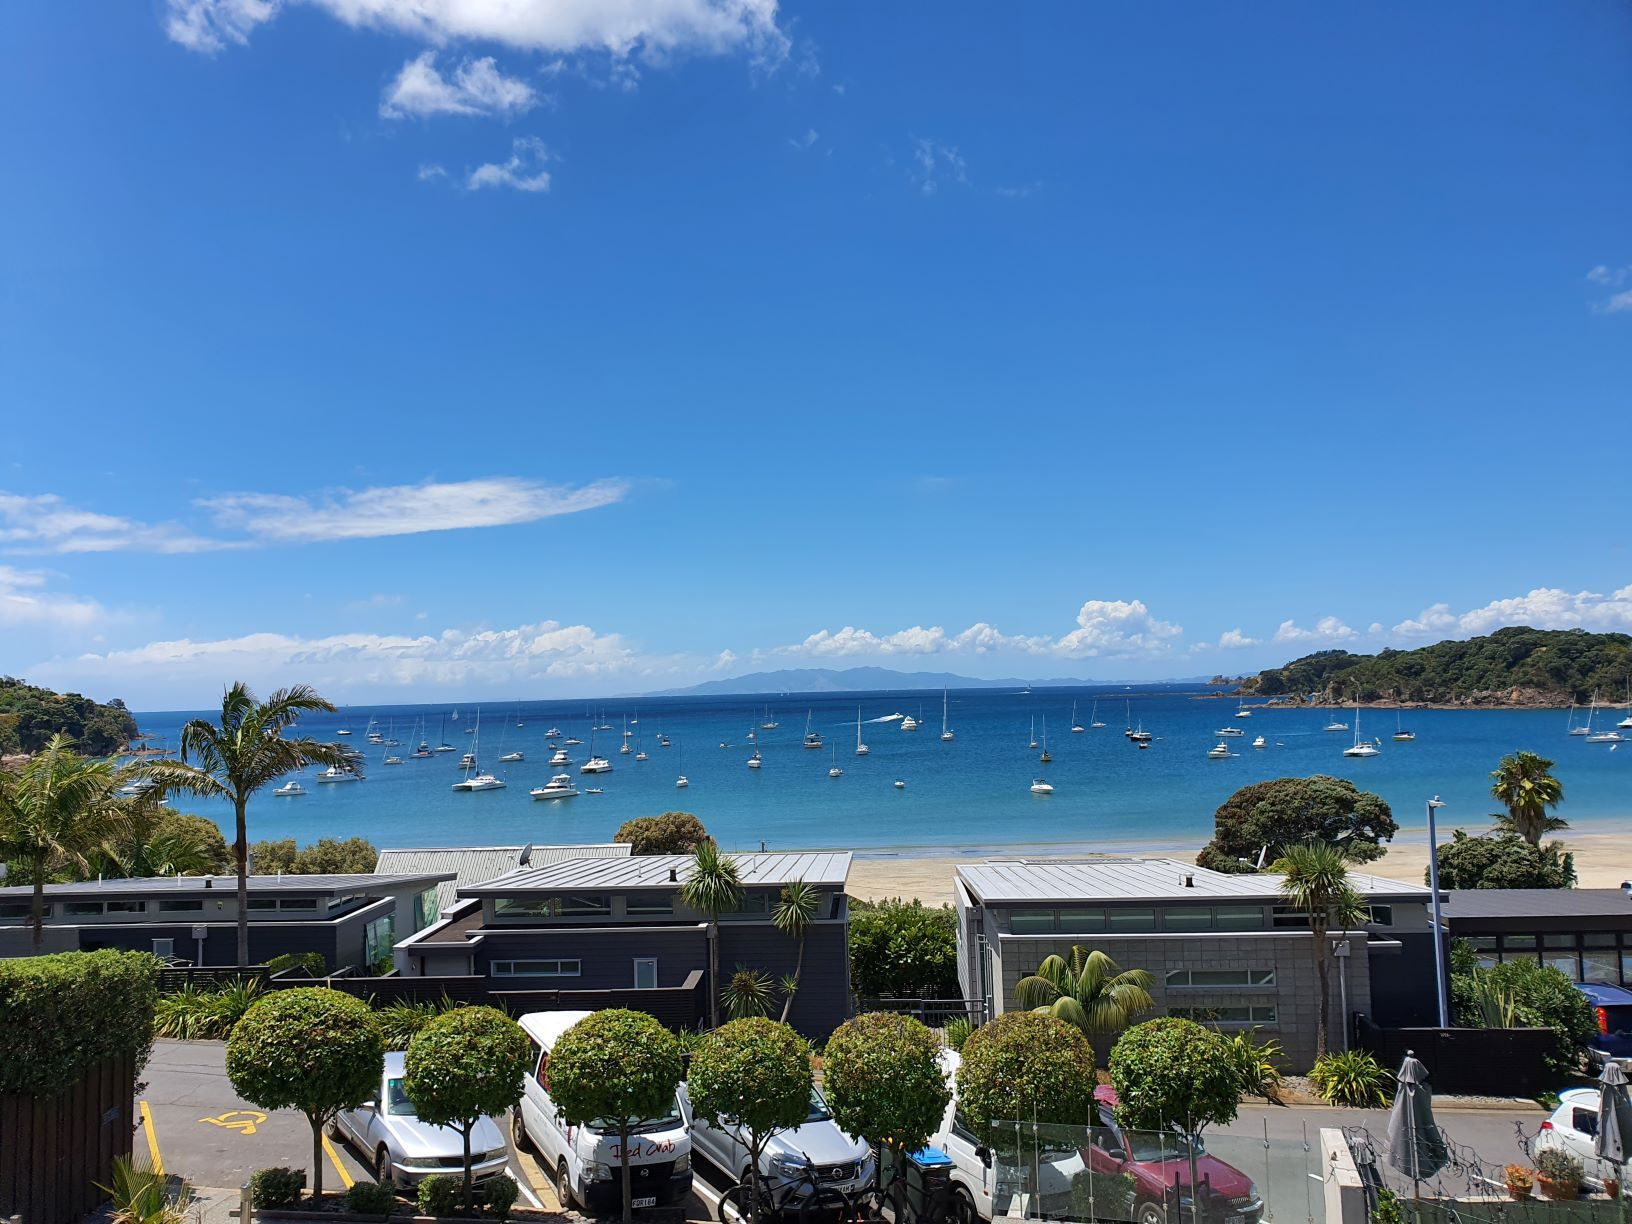 The view from Ocean View Road on Waiheke Island